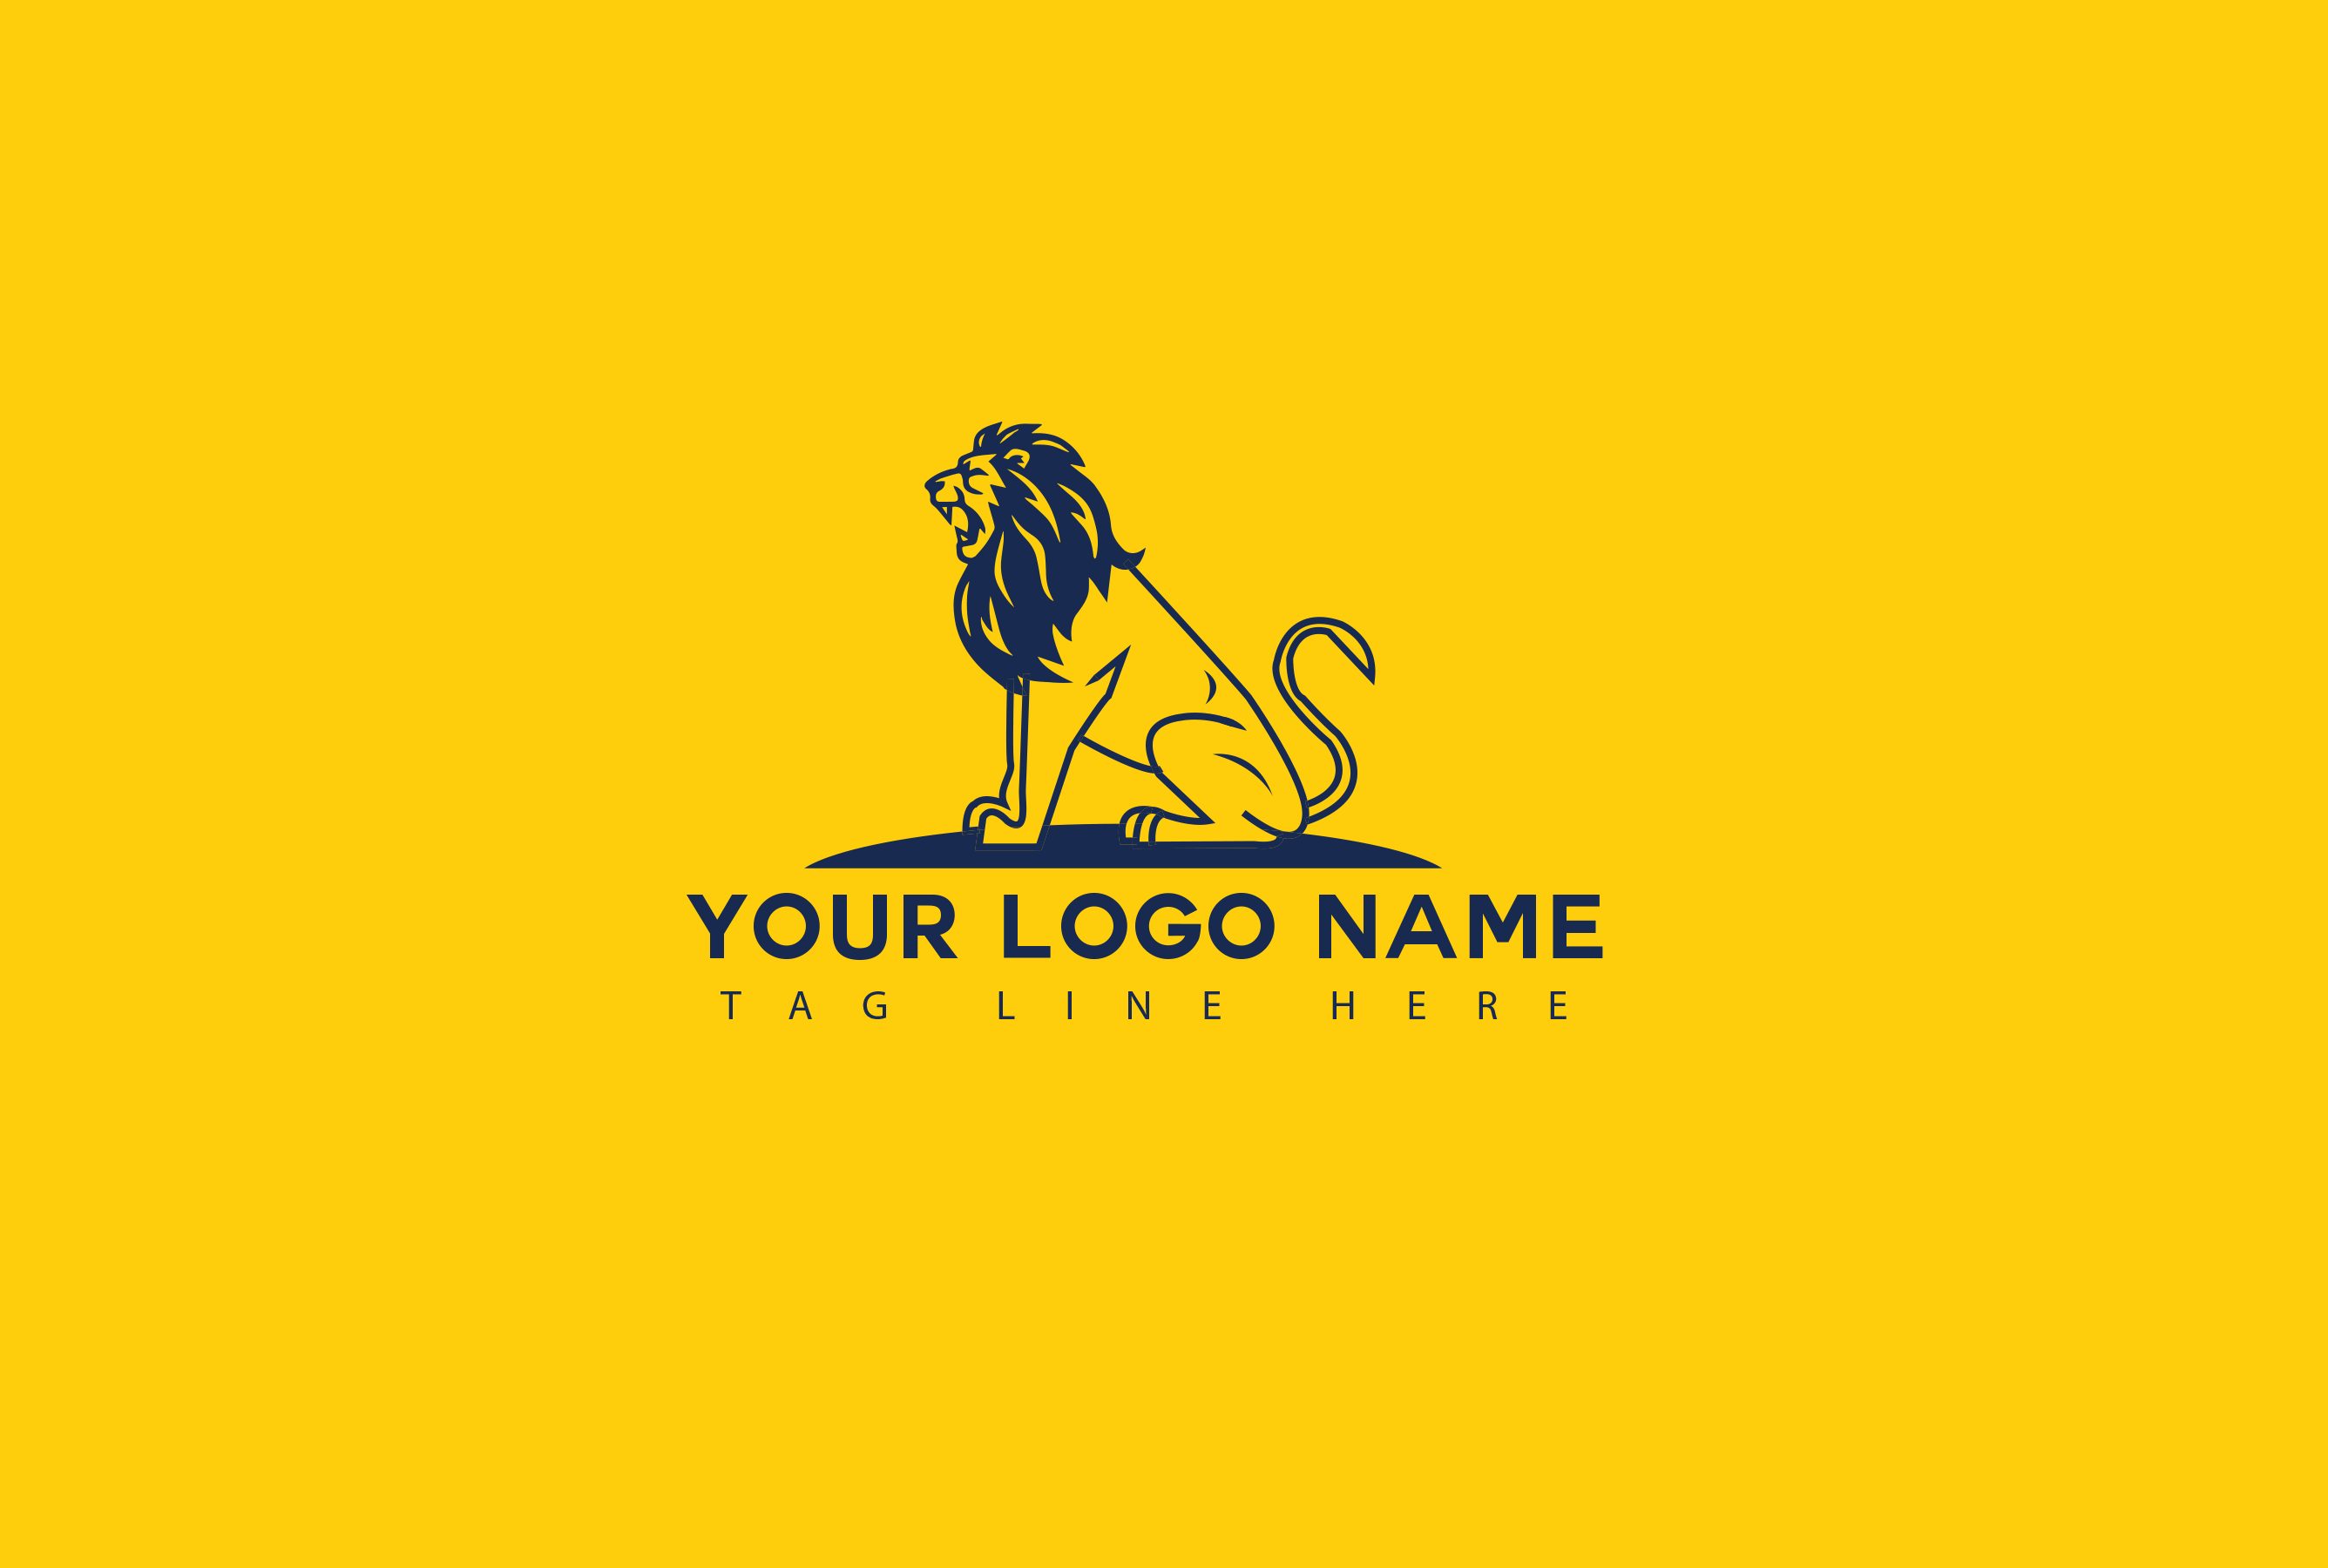 i will 2 unique animal logo design in 24hrs